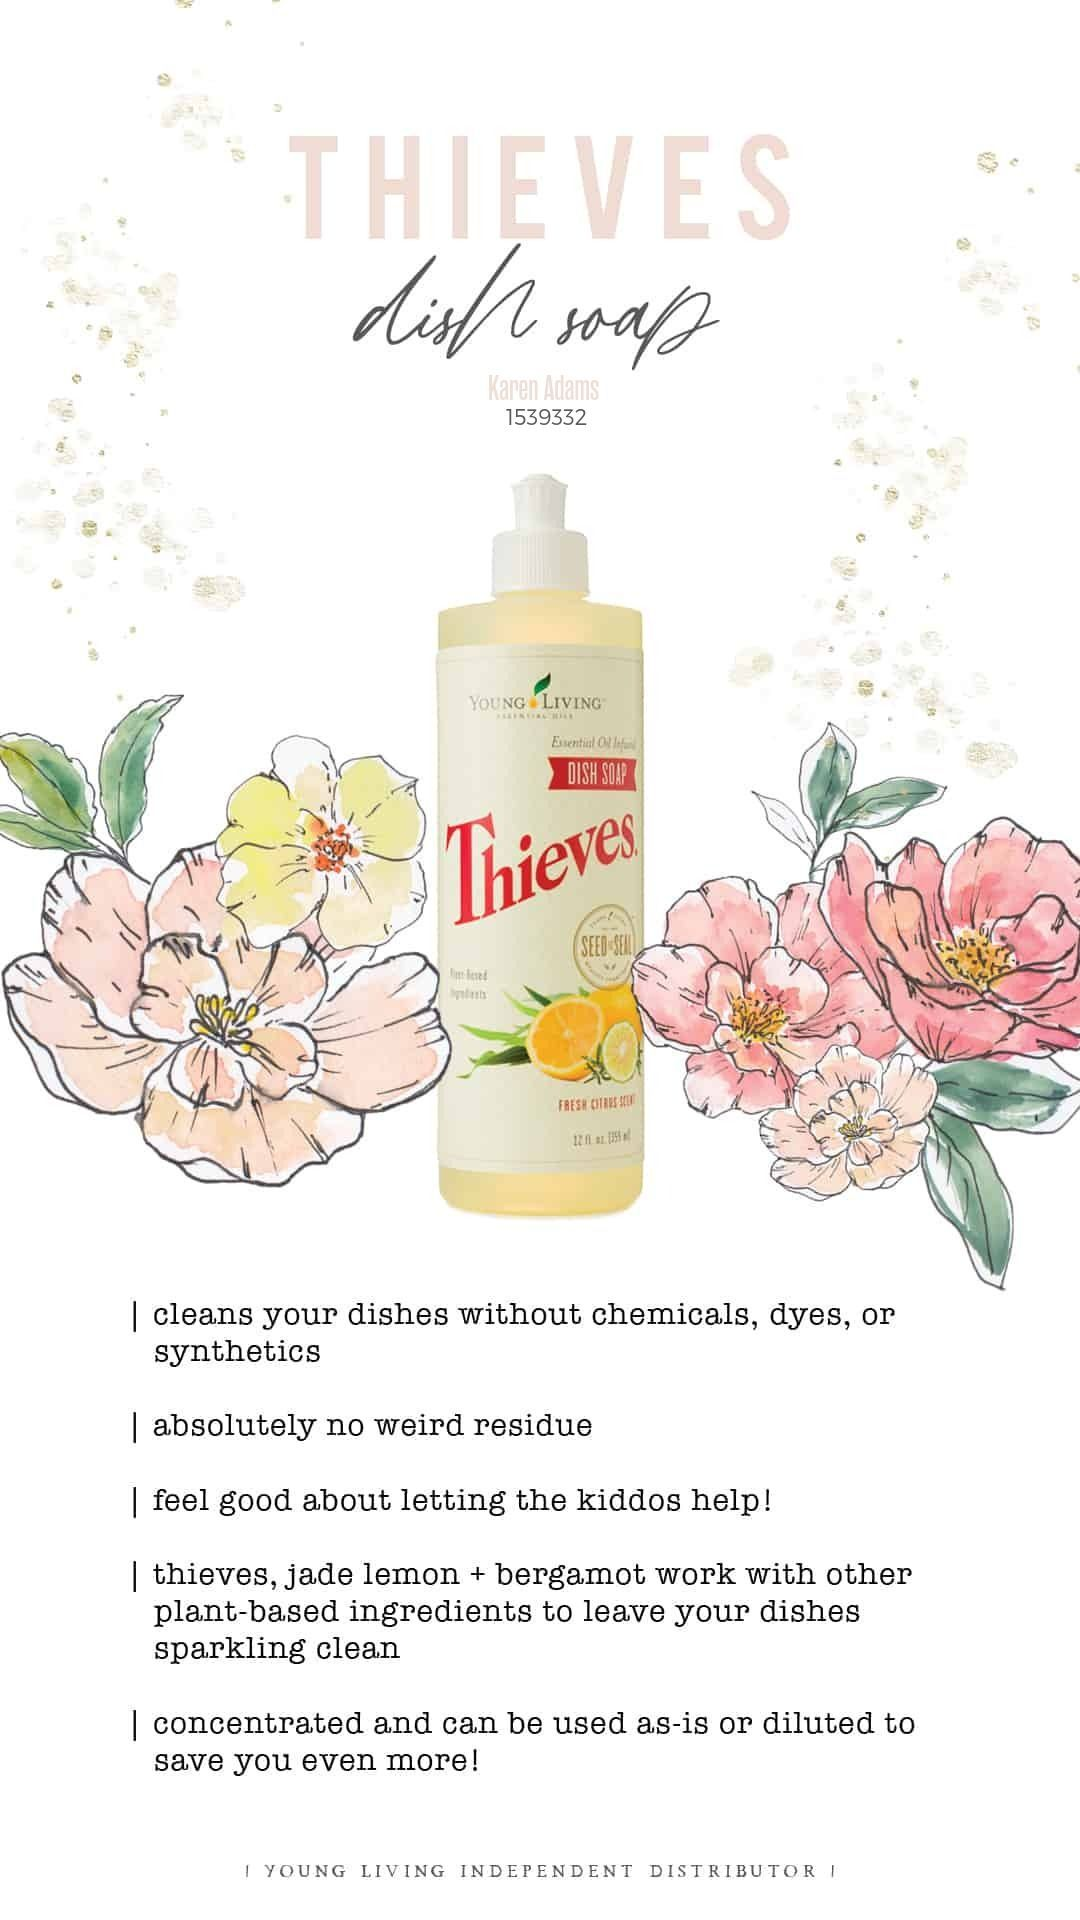 Thieves Dish Soap is formulated without toxic chemicals